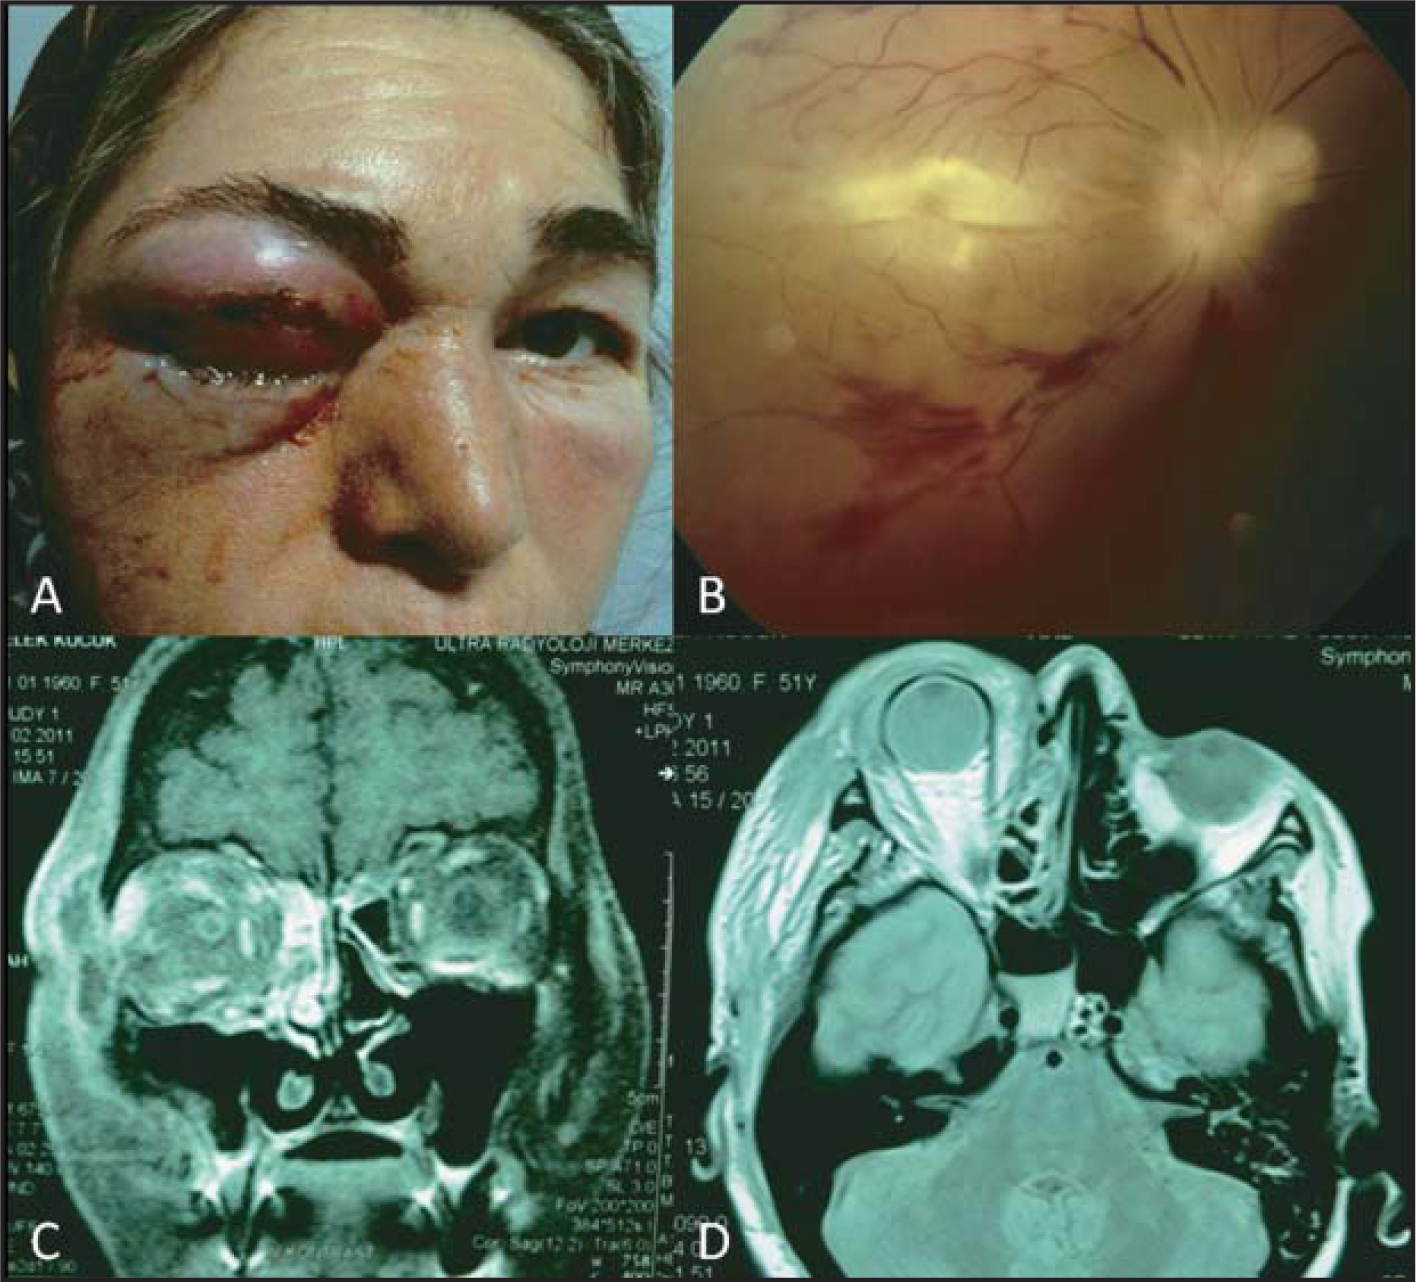 (A) The patient with marked proptosis, eyelid edema, and purulent discharge. (B) Fundus photograph at initial examination reveals optic disc edema, attenuated arterioles and venules, preretinal and intraretinal hemorrhages, and retinal whitening. (C) Coronal contrast-enhanced T1-weighted magnetic resonance imaging demonstrates enhancement of orbital soft tissue and opacification of ethmoidal air cells. (D) Axial T1-weighted magnetic resonance imaging shows marked proptosis, soft tissue thickening, and edema.